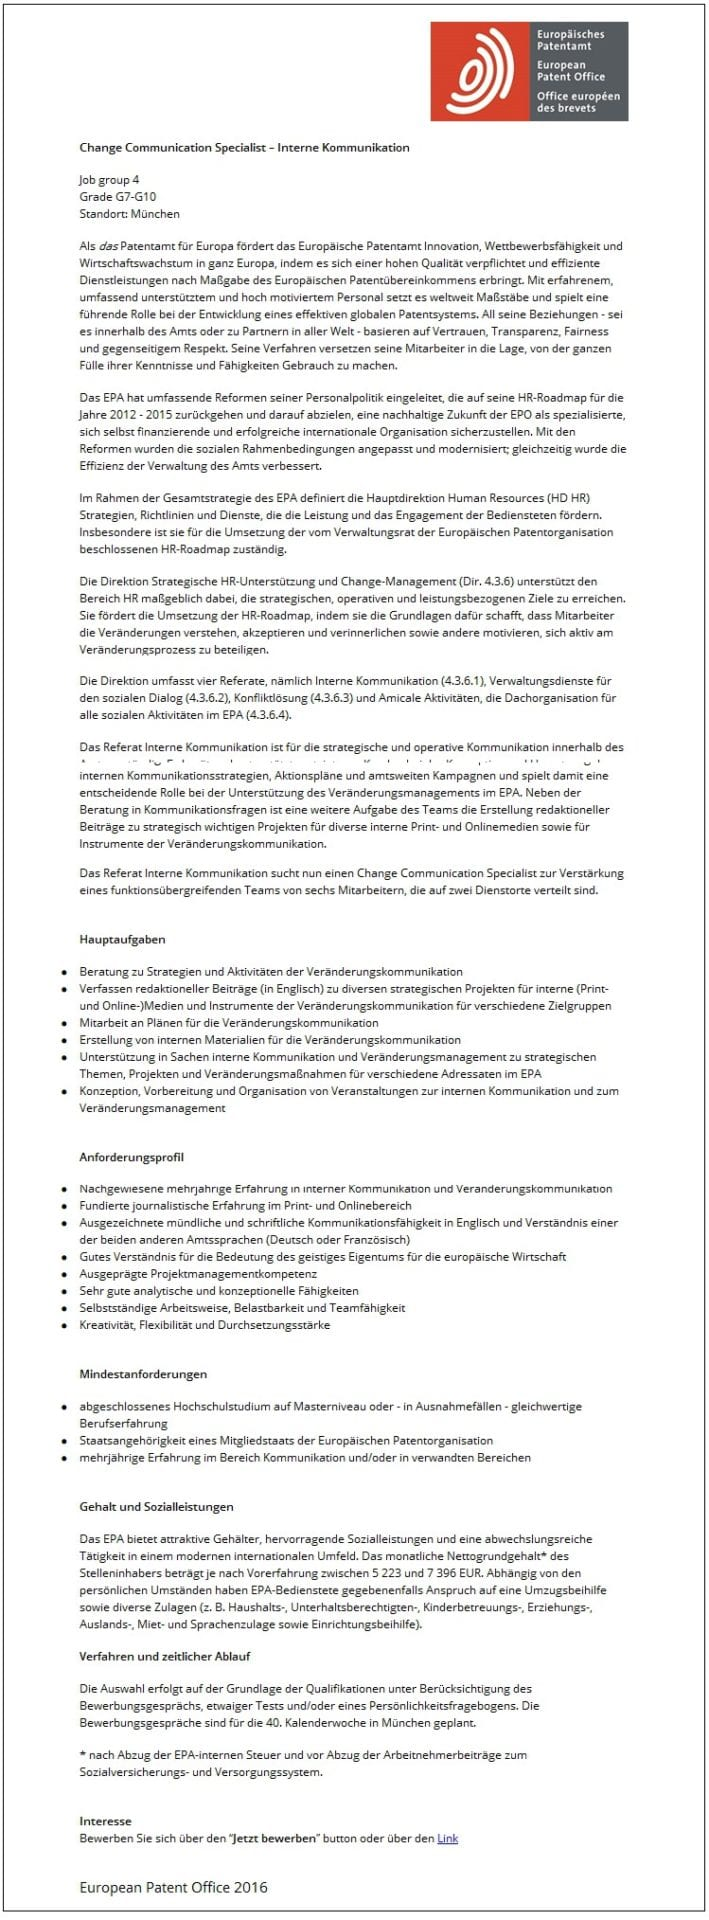 Stellenangebot Change Communication Specialist - Europaeisches Patentamt